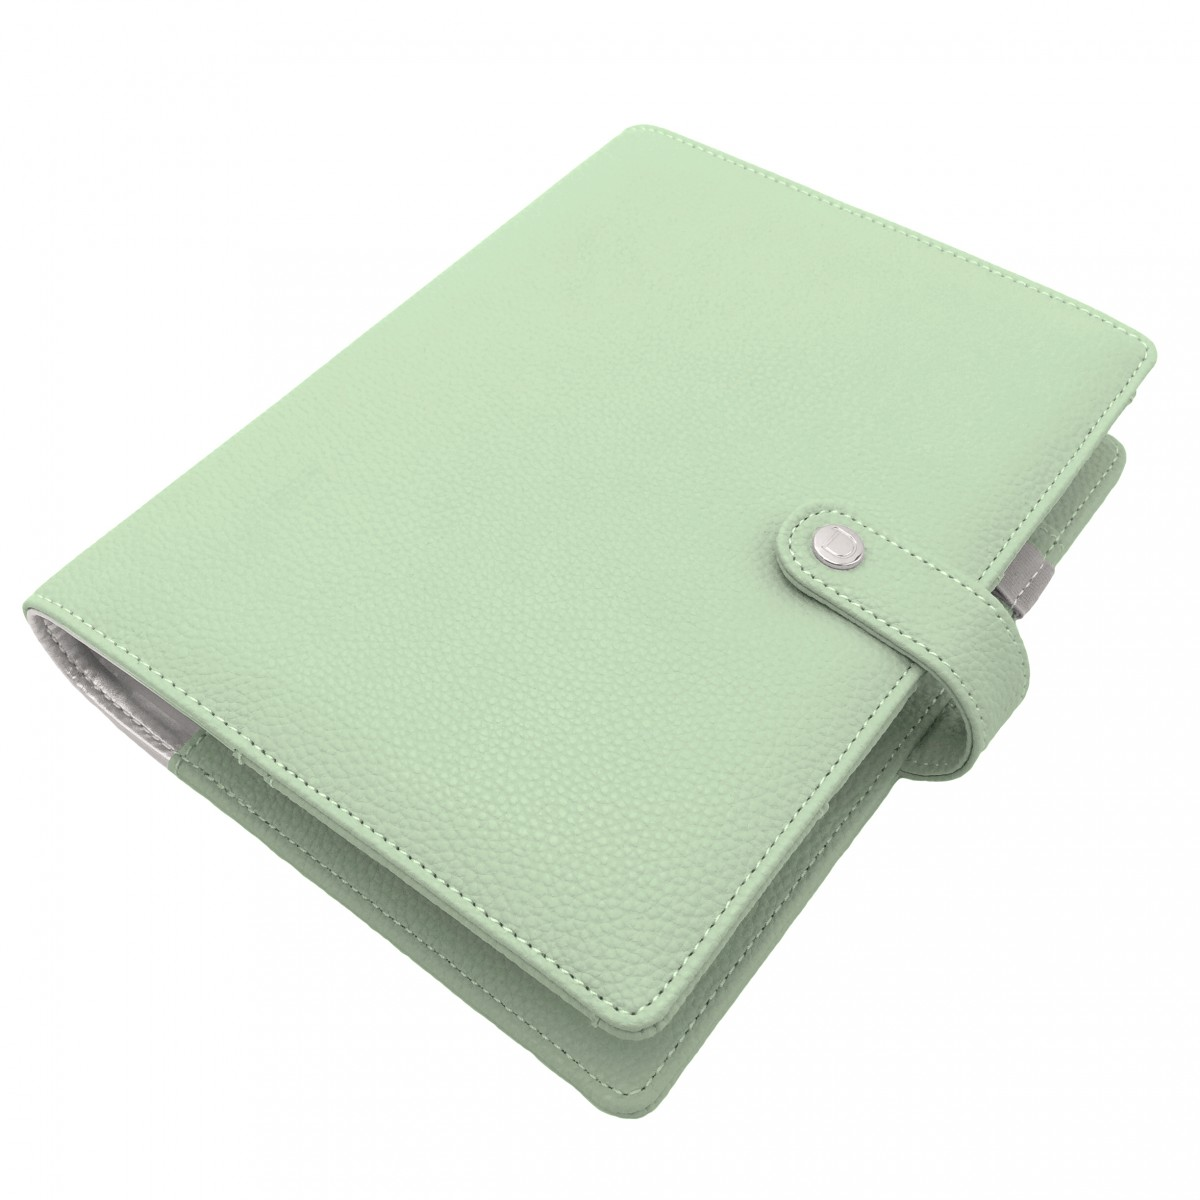 DISCAGENDA SERENE A5 TEA GREEN